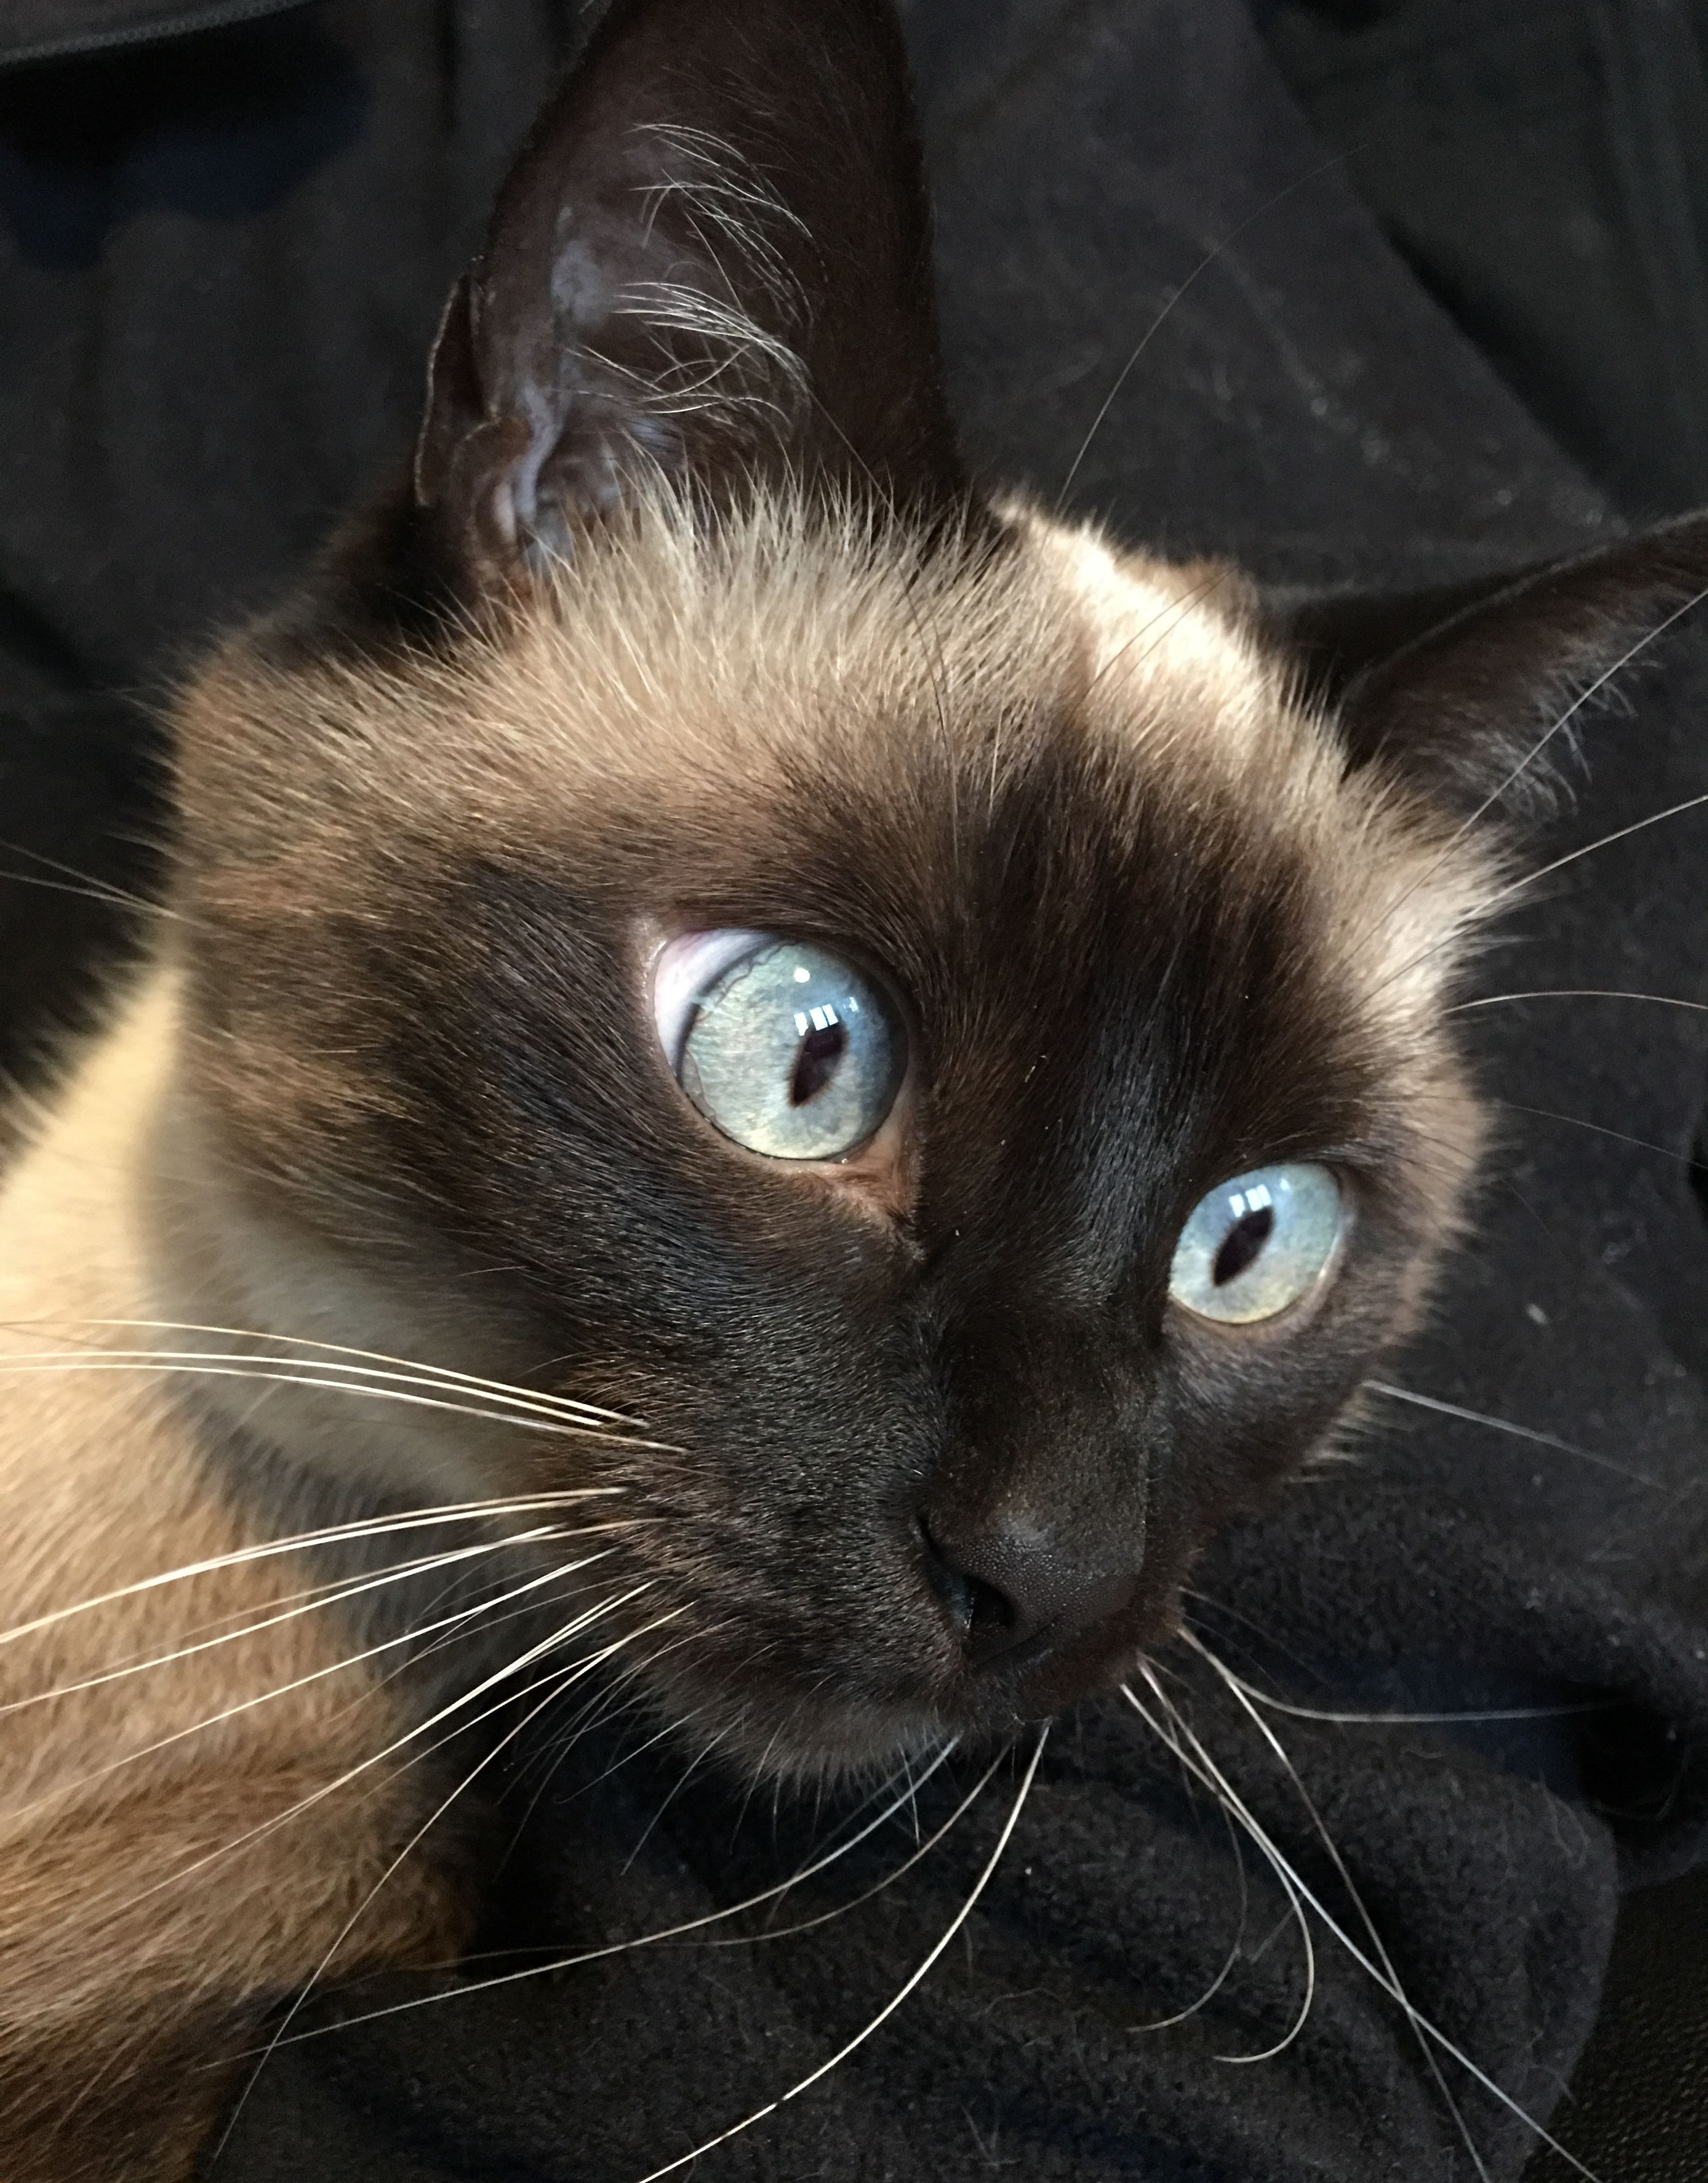 SiameseCat Cat breeds siamese, Cats, Cats and kittens